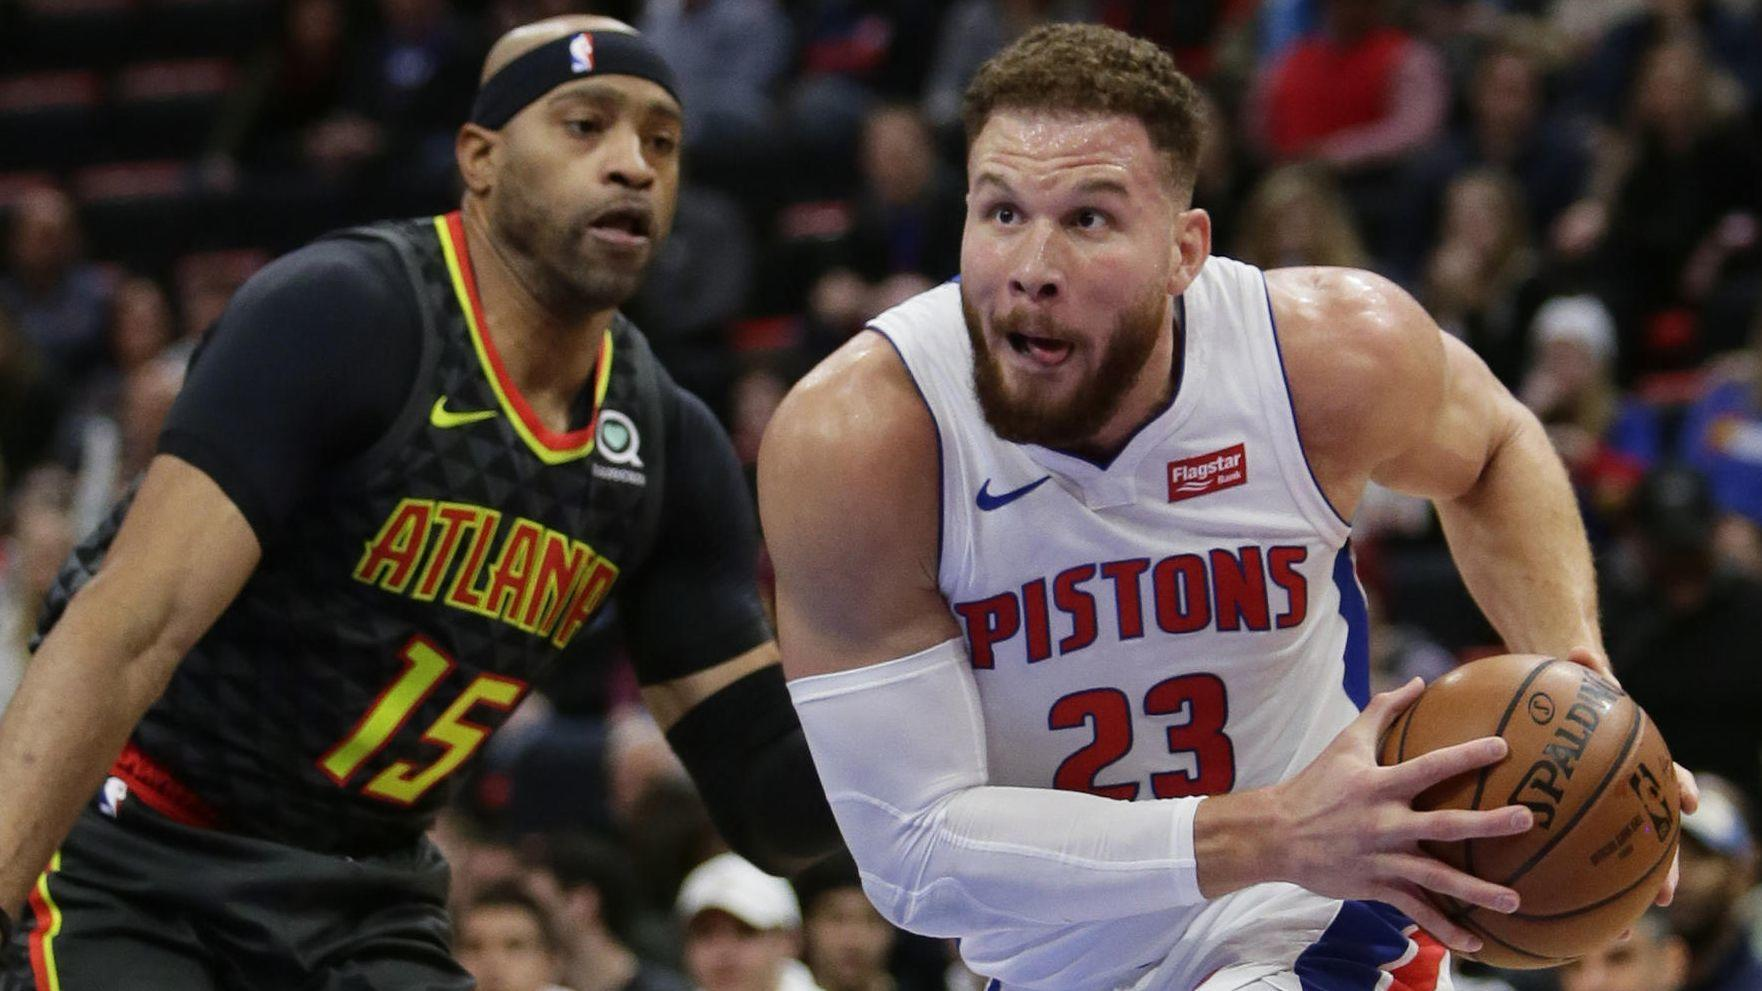 Doc Rivers believes Blake Griffin deserves to have Clippers jersey retired